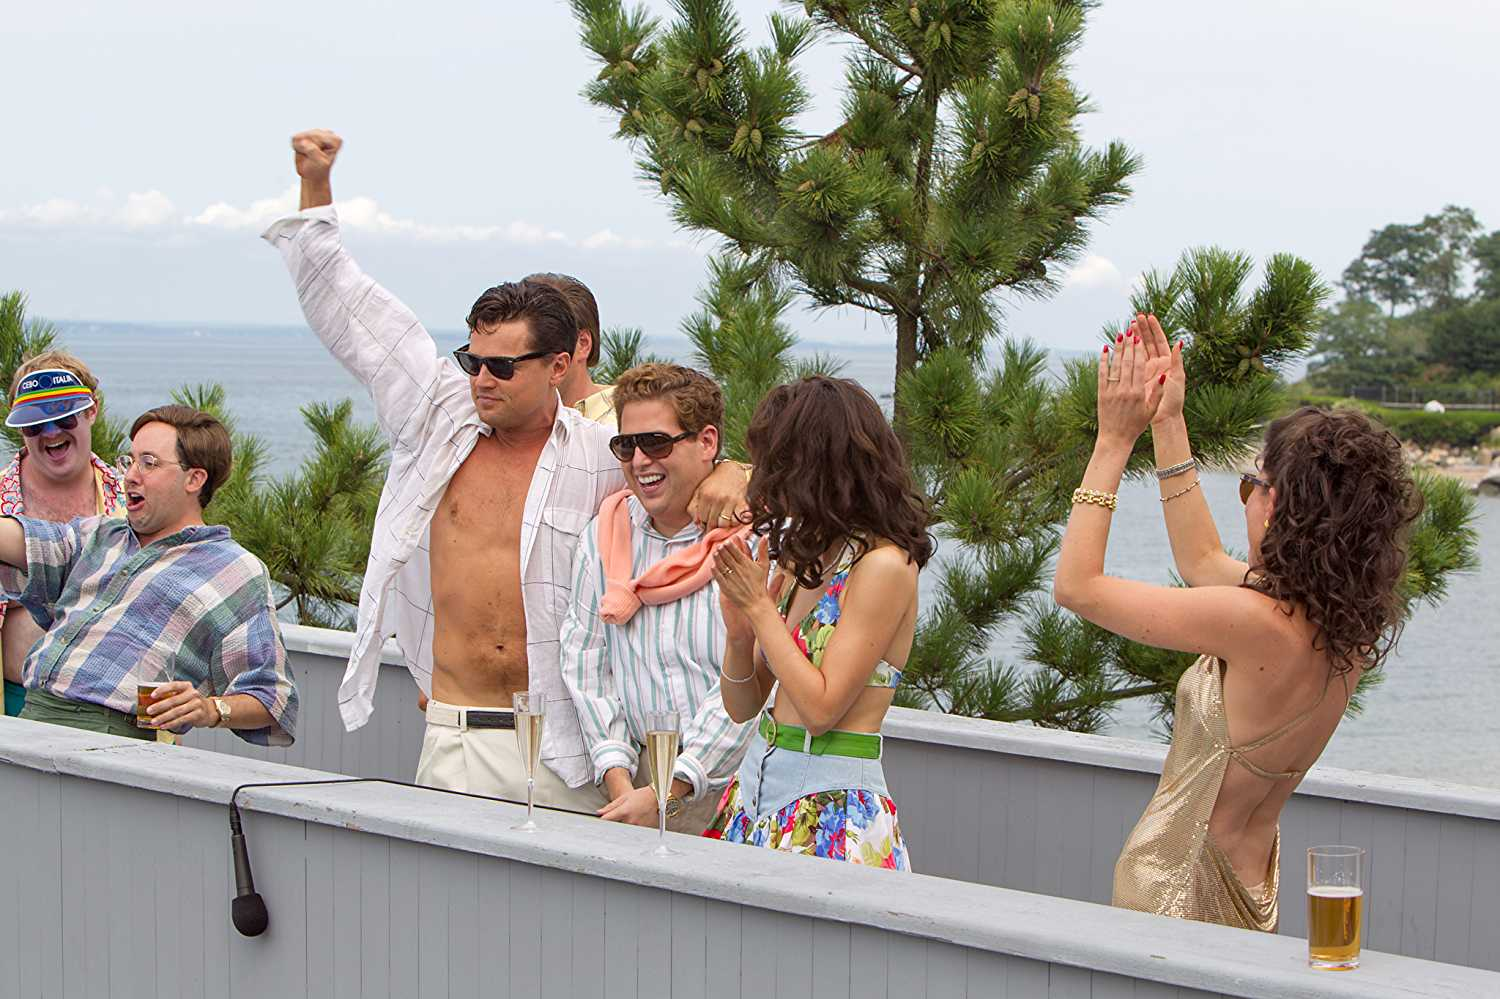 'The Wolf of Wall Street' had projected some of the excesses of the '80s. (IMDb)